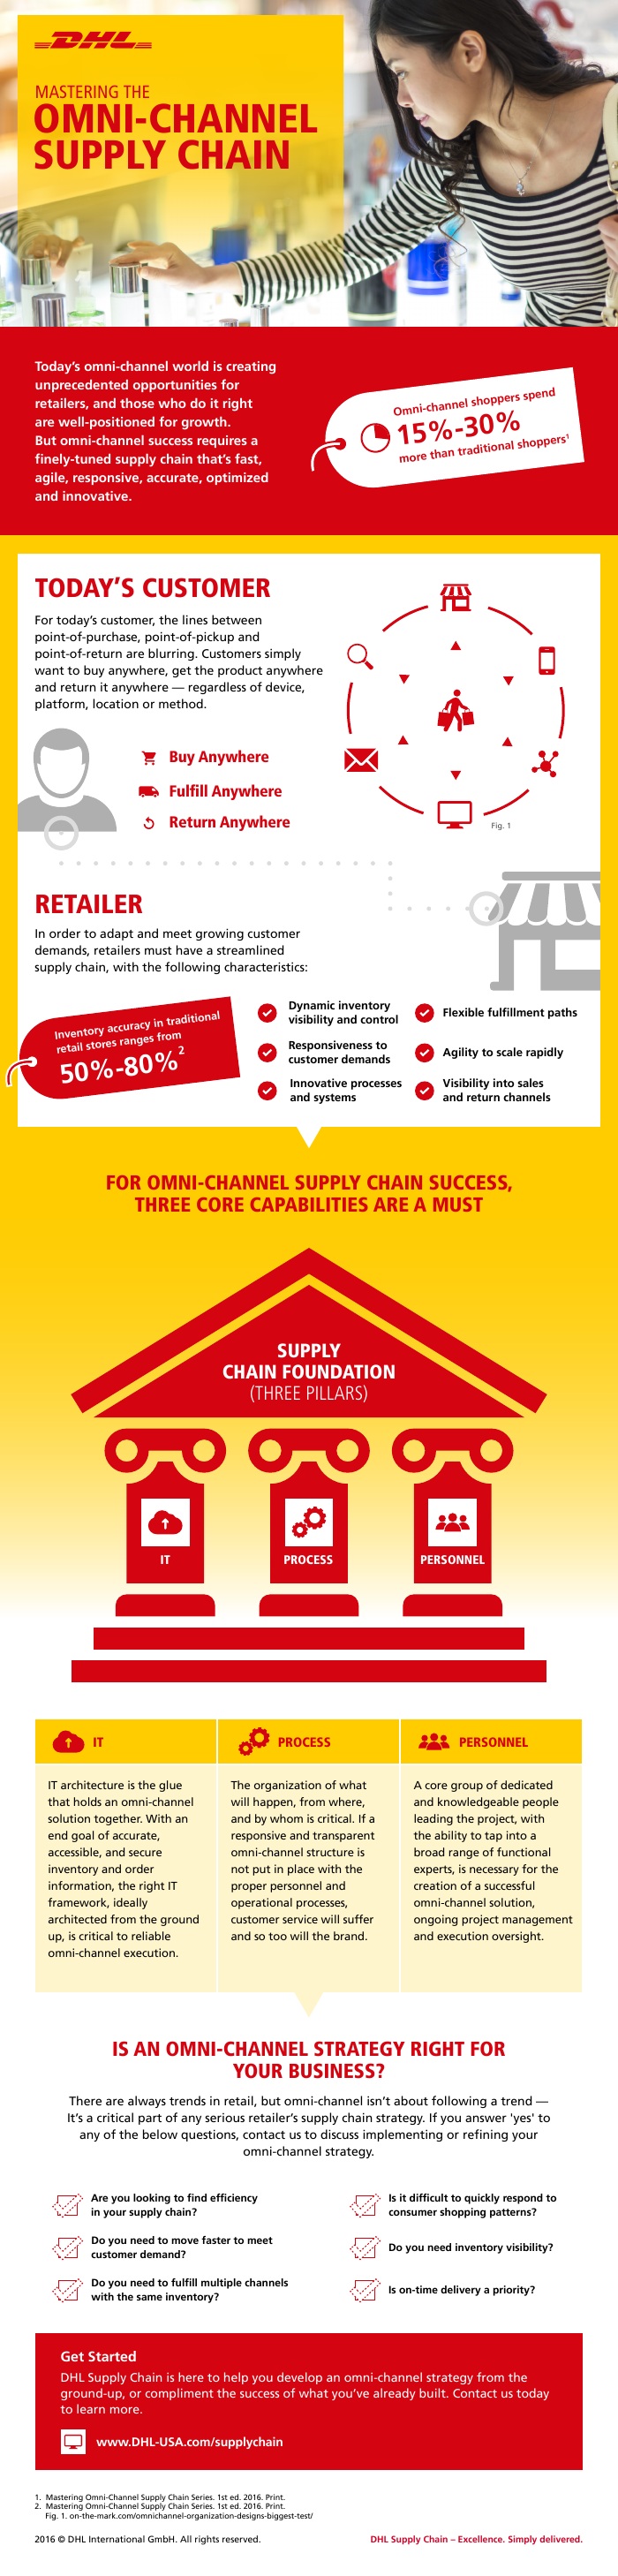 Infographic | Is an Omni-Channel Strategy Right for Your Business?